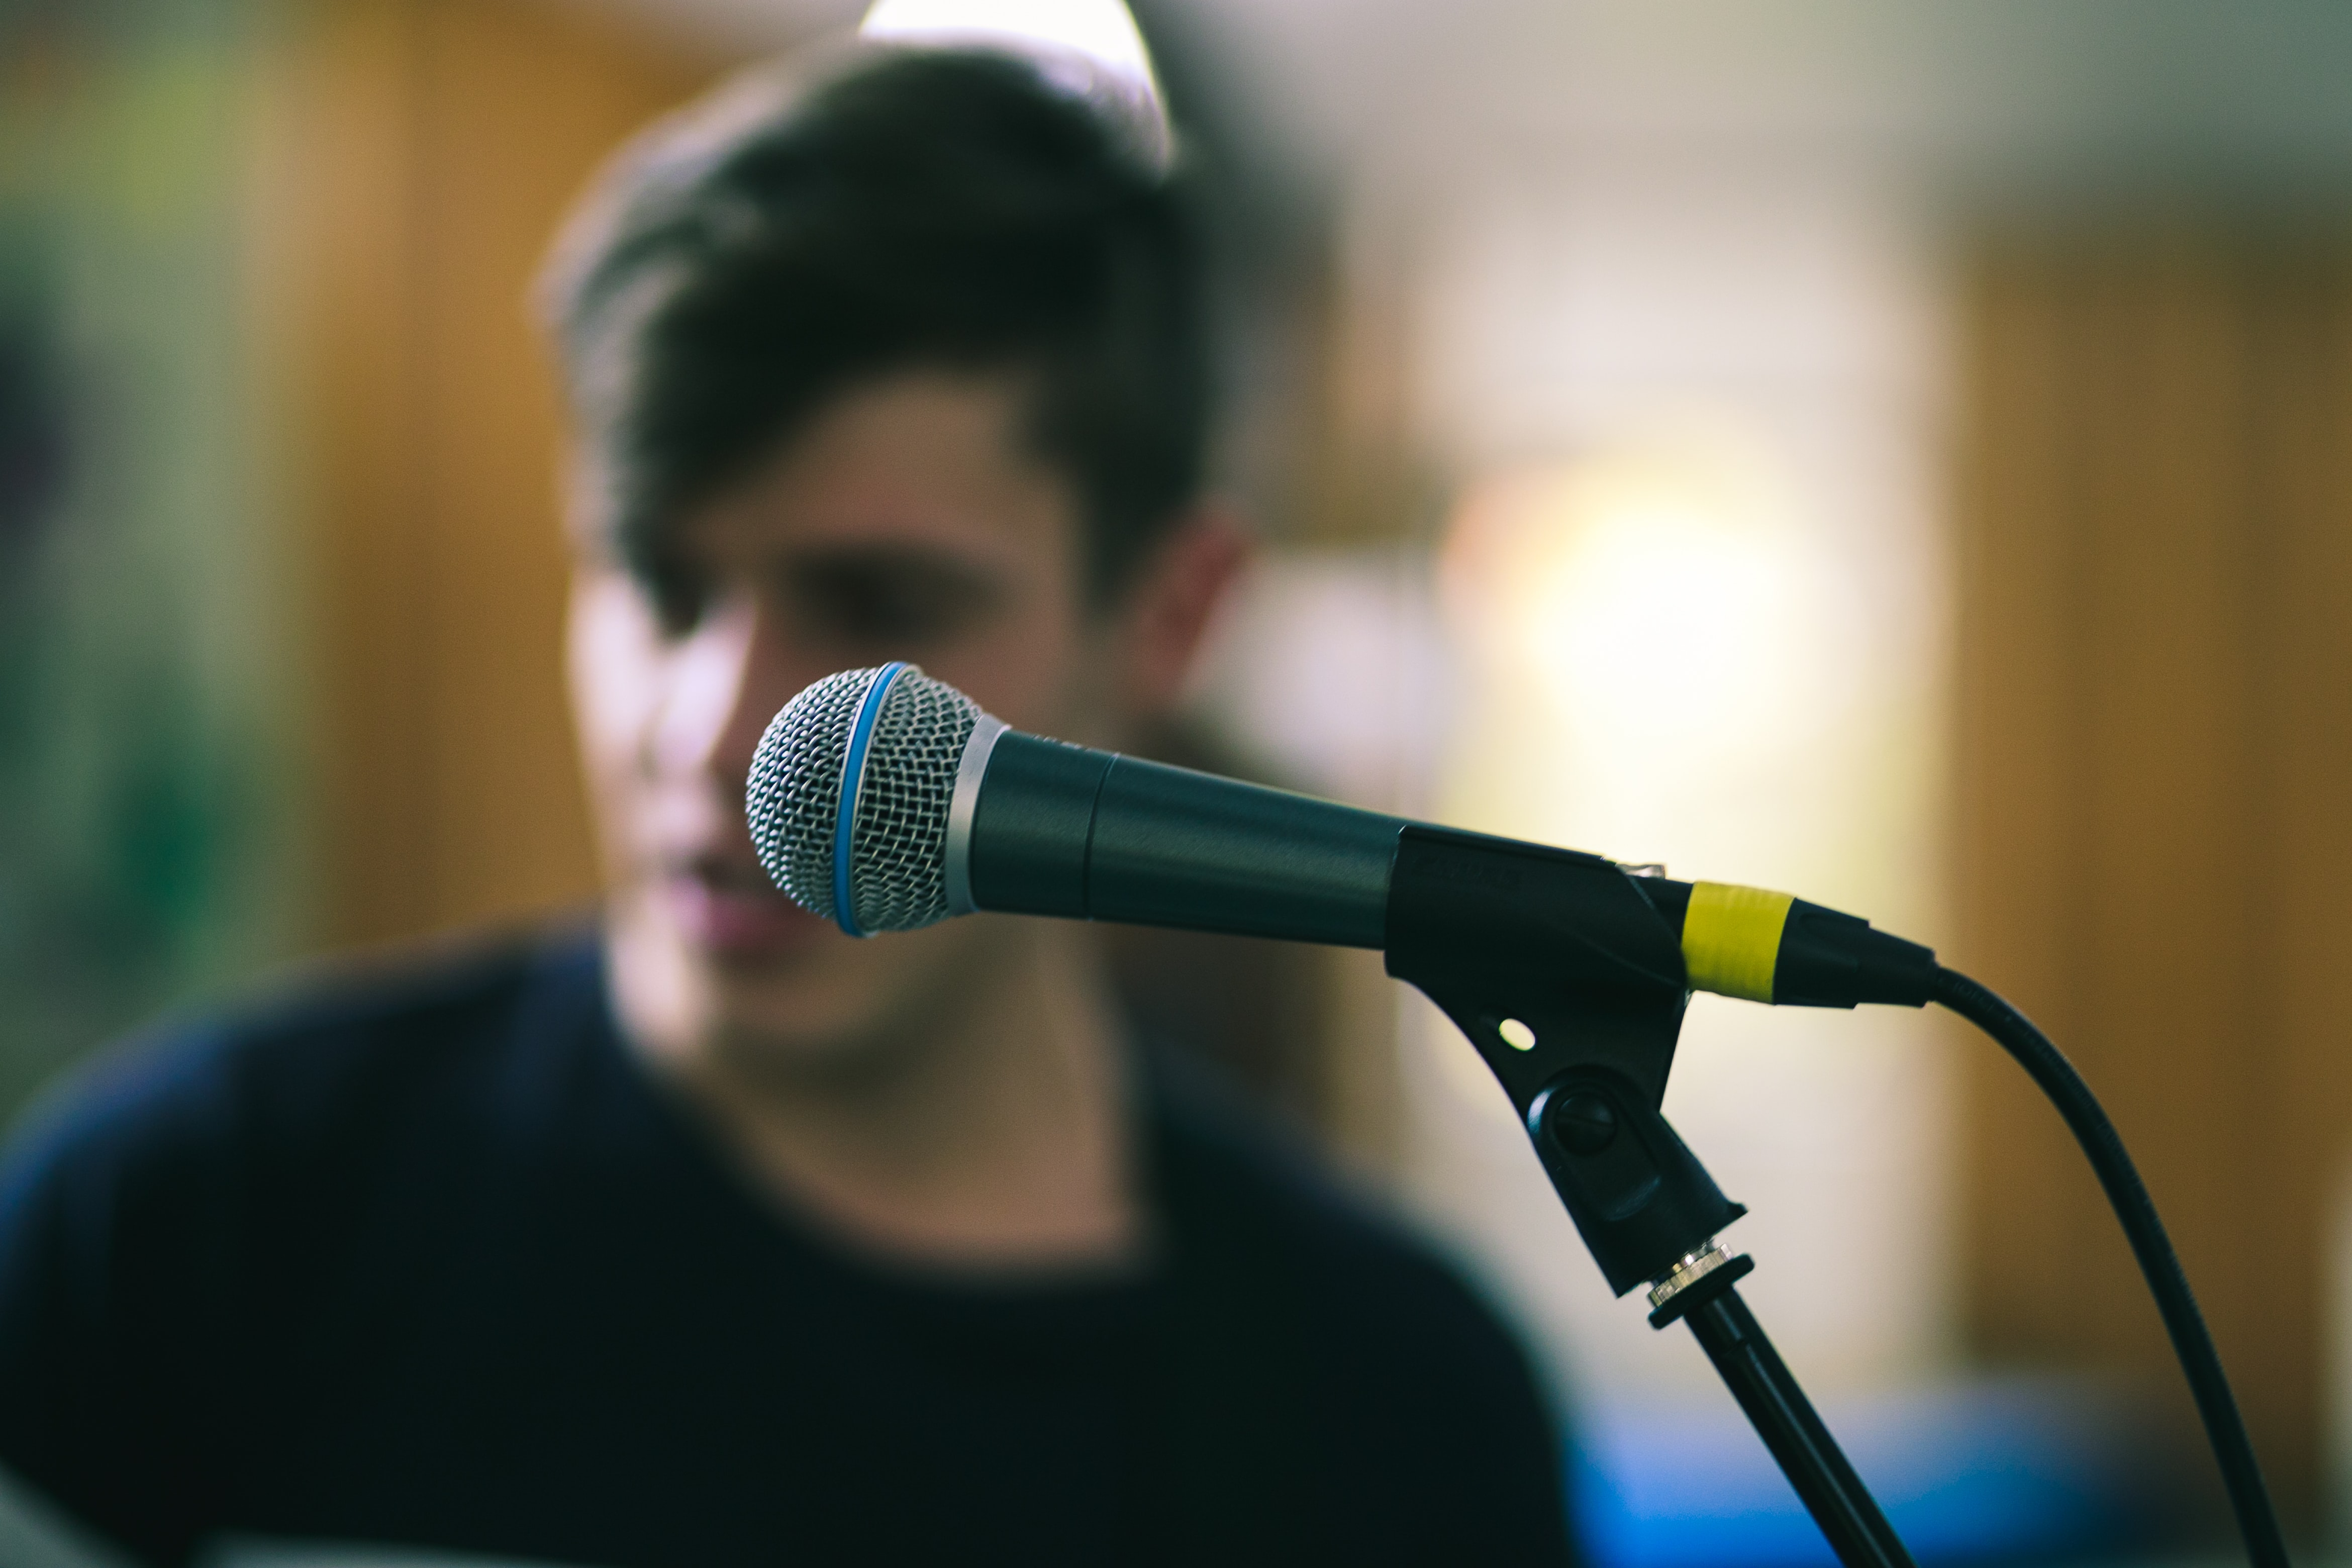 selective focus photography of black corded microphone on stand